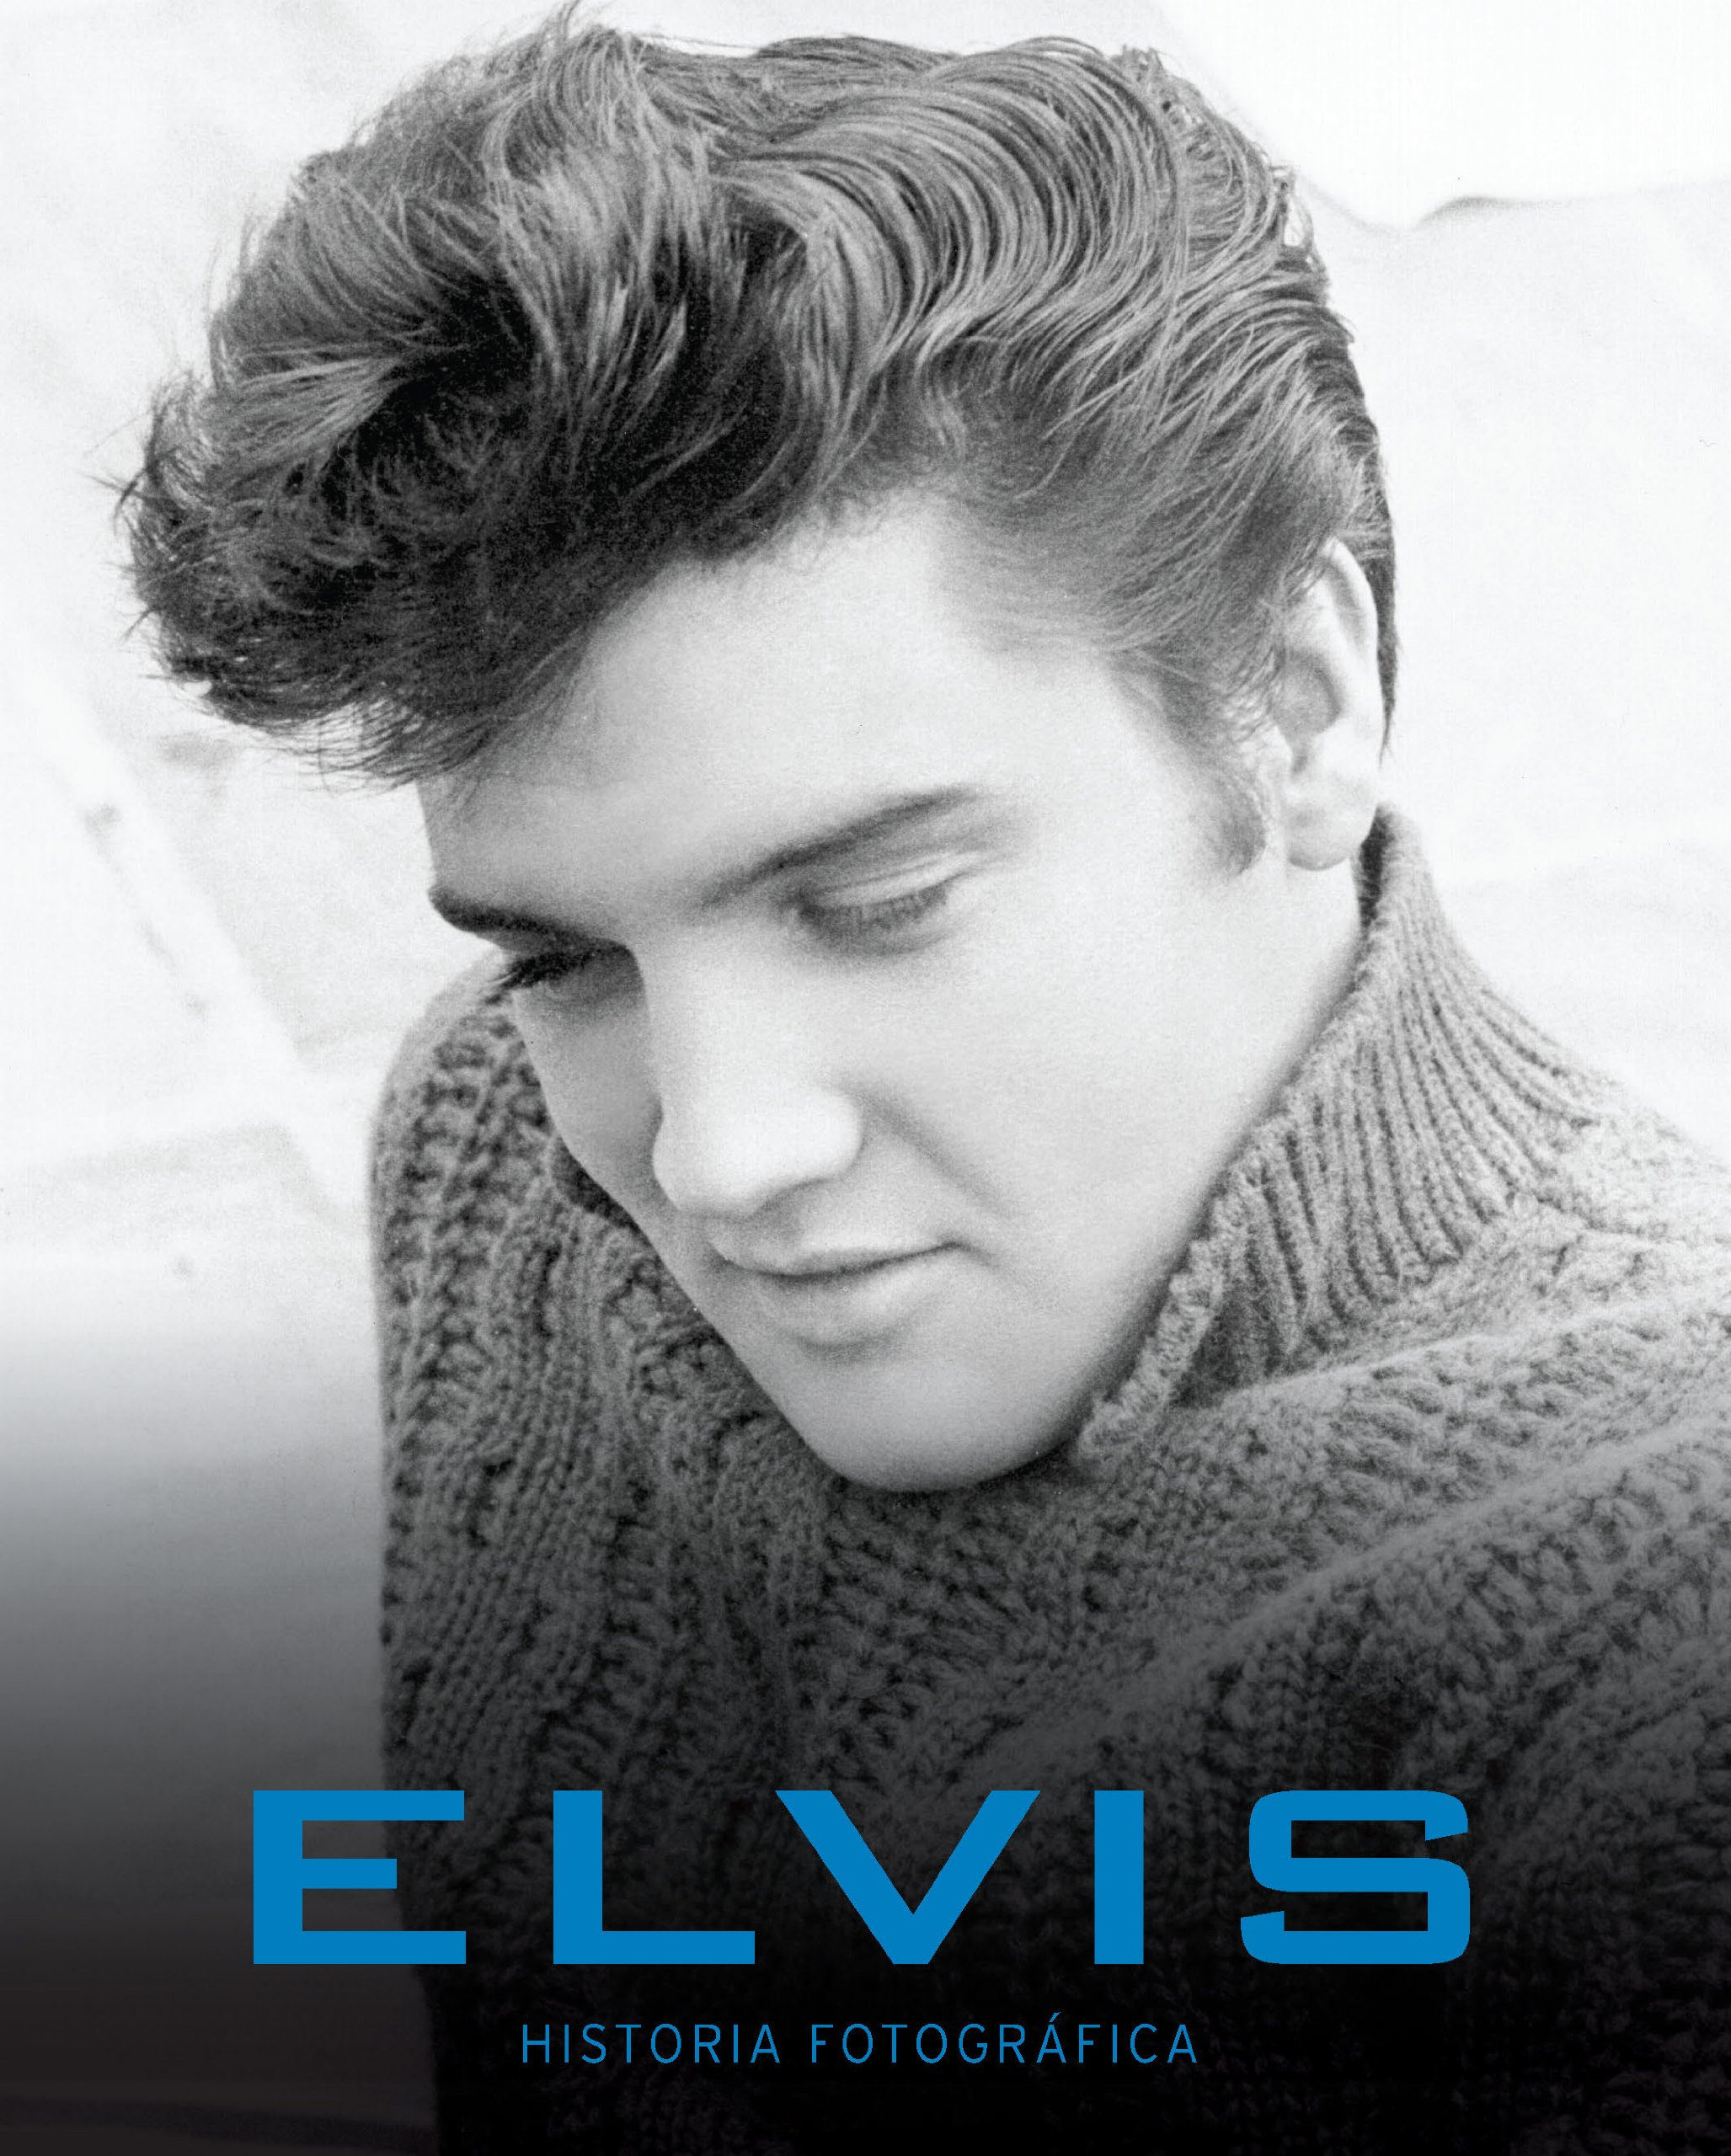 elvis-historia-fotogrphica-photo-history-spanish-edition